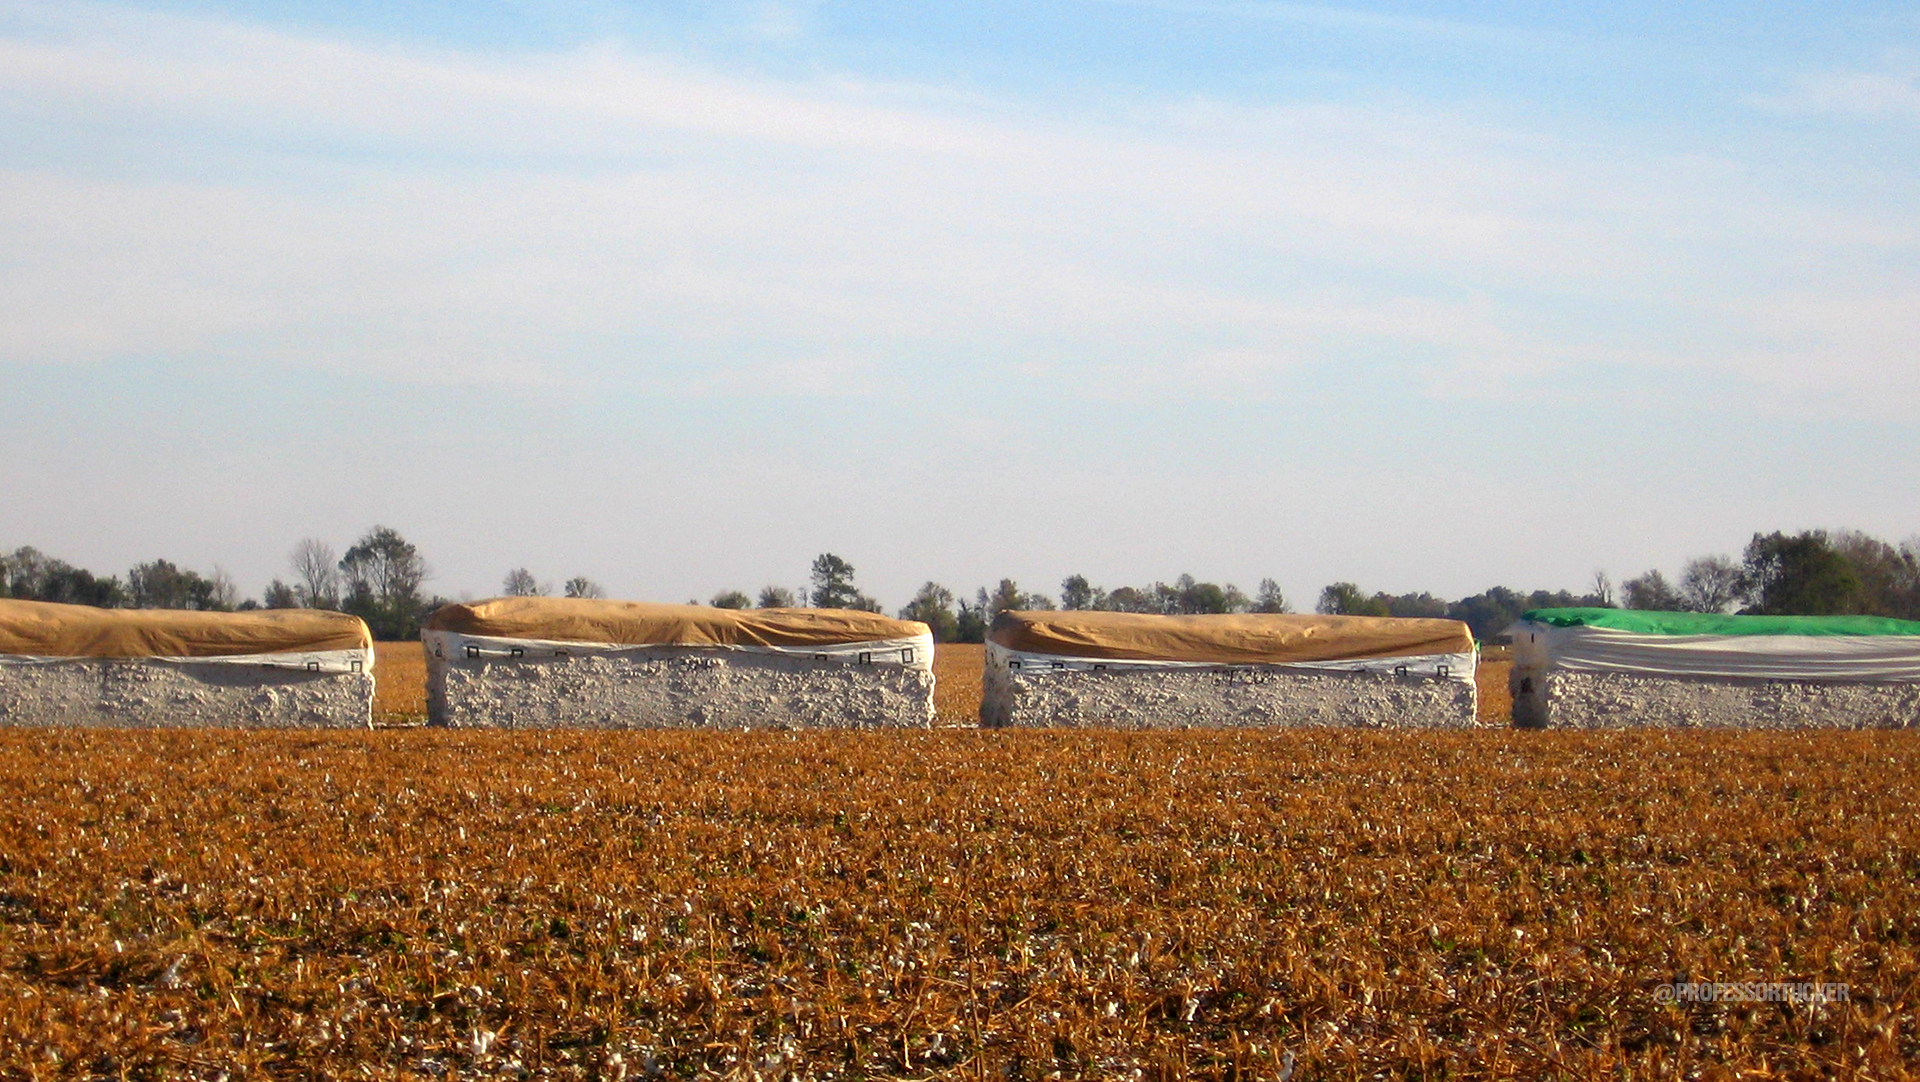 2005_ISU Studio_Clarksdale Rural Cotton Bales.jpg